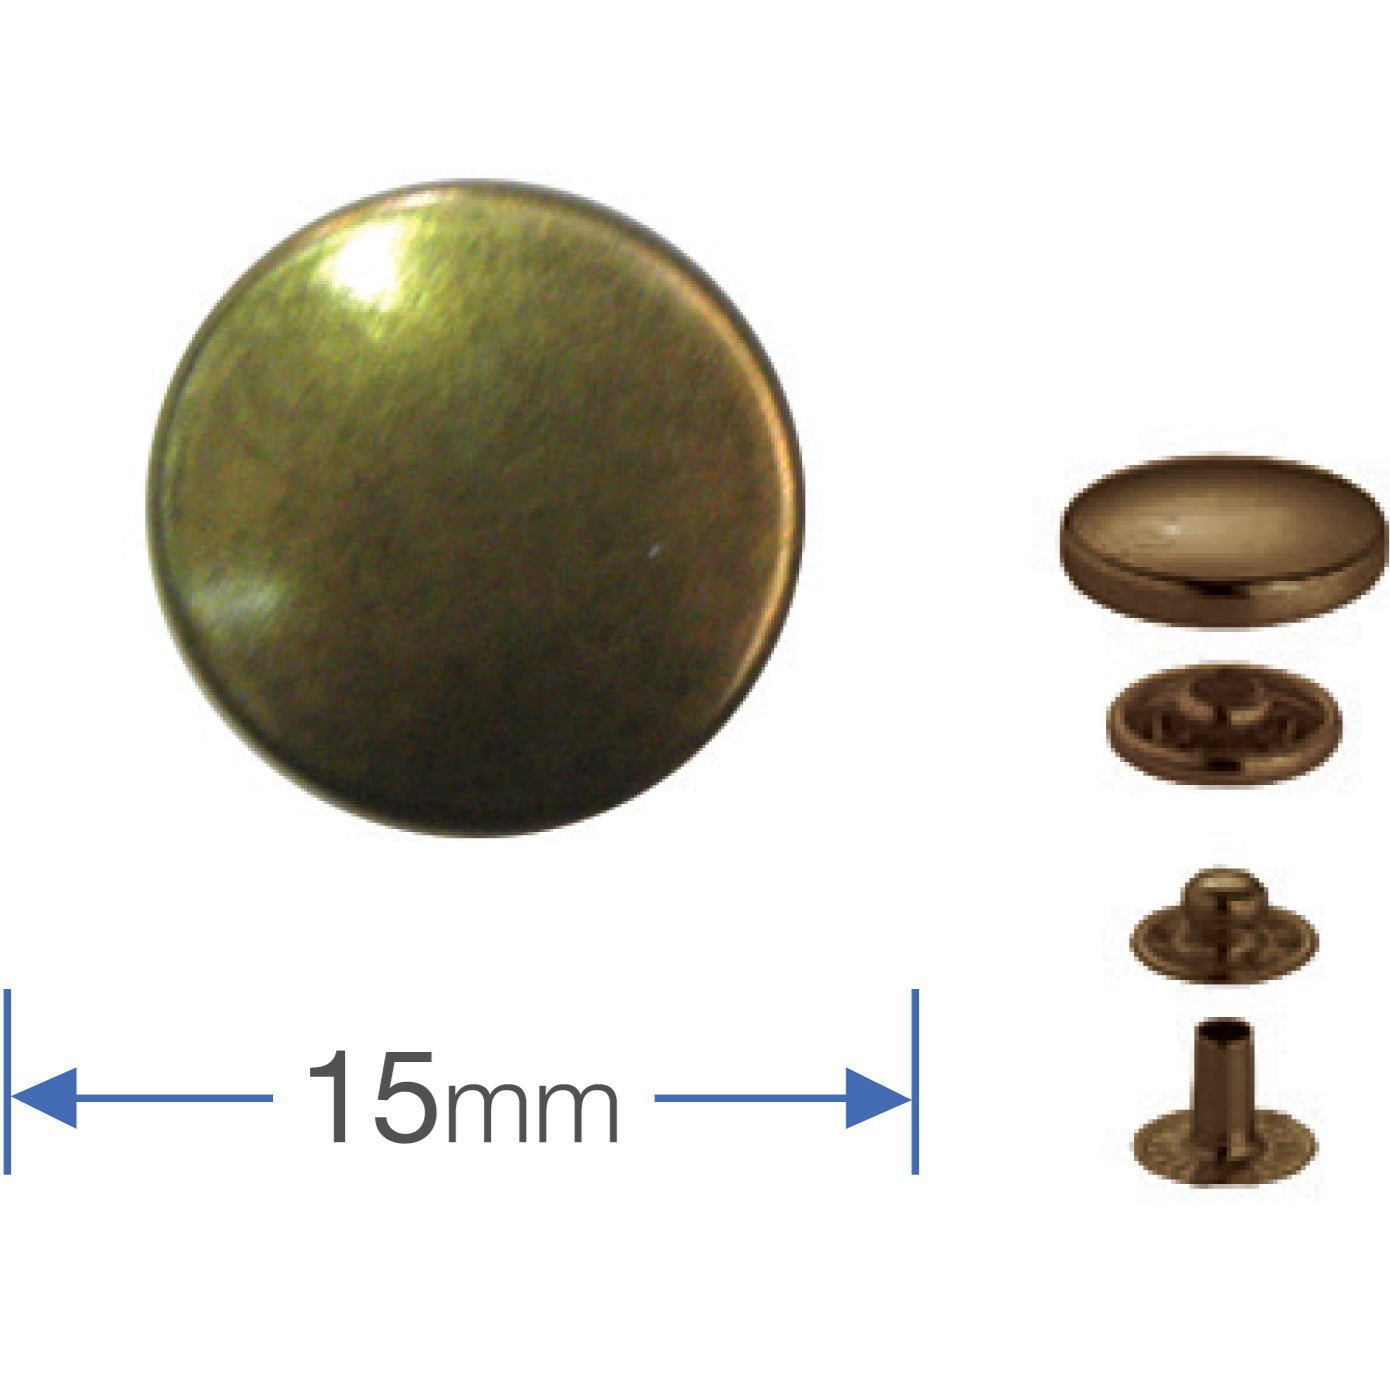 Press Studs (Non-Sew) - Antique Brass 15mm: PACK OF 100